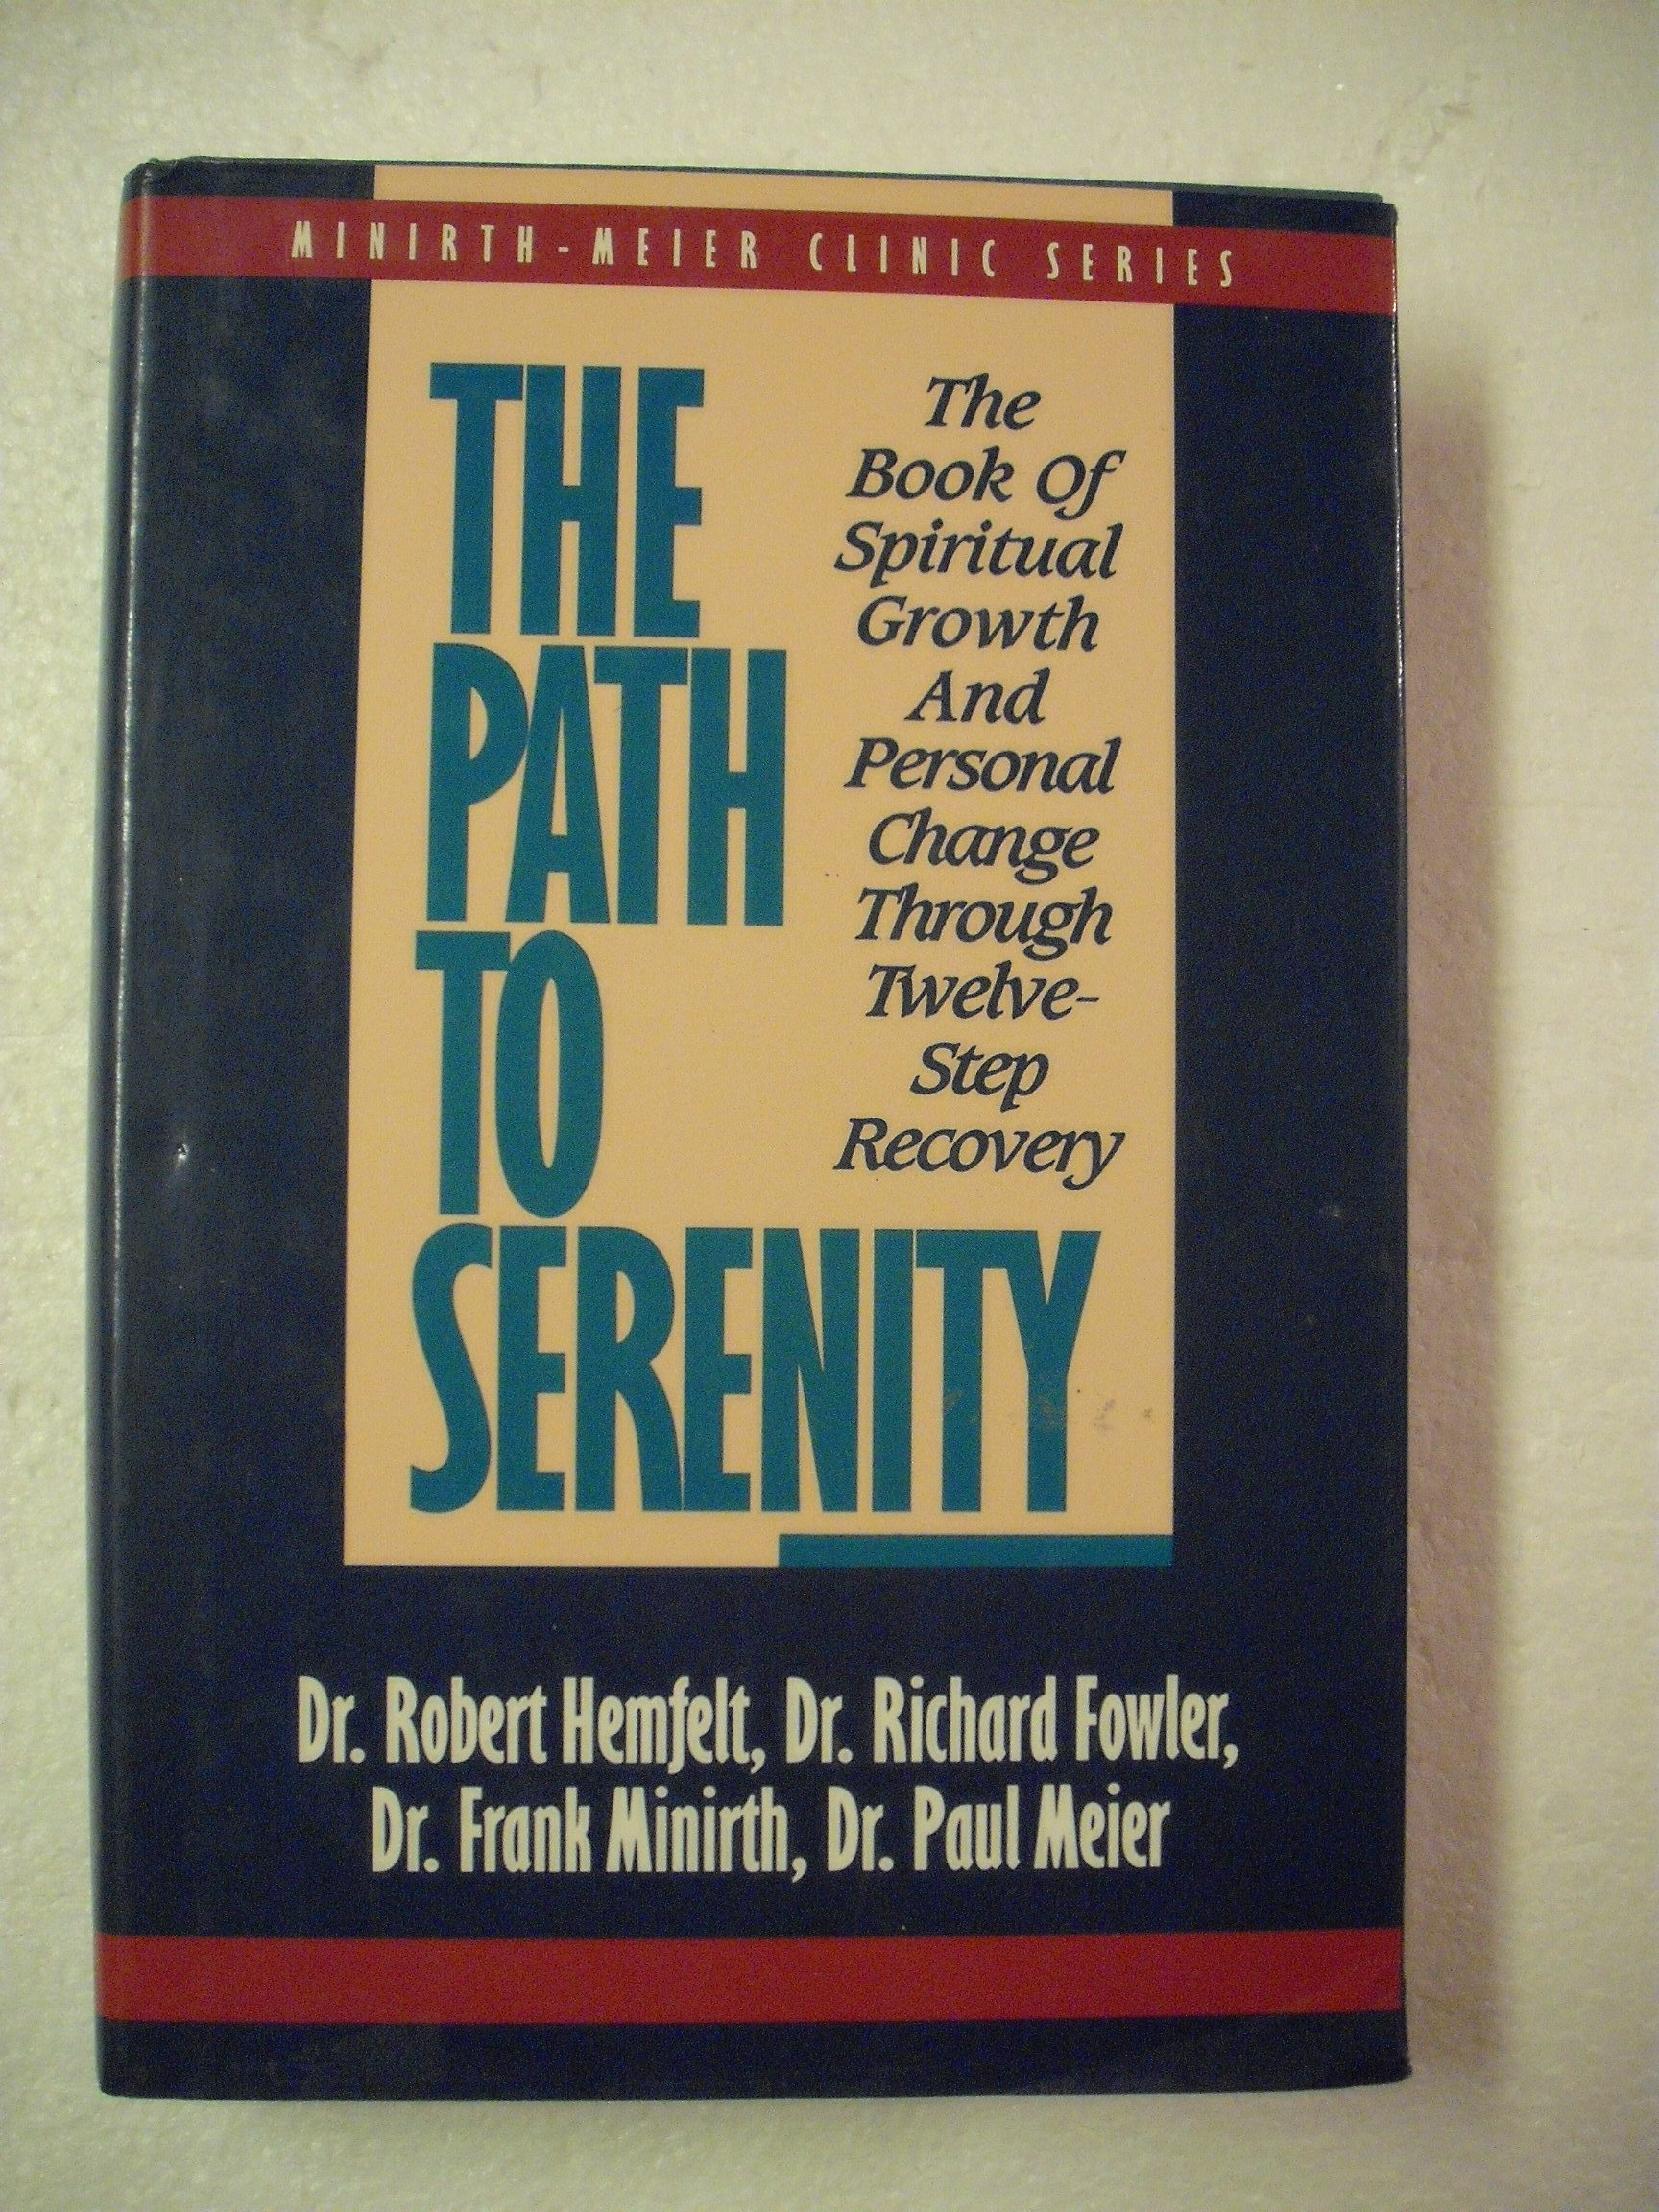 The Path to Serenity: The Book of Spiritual Growth and Personal Change  Through Twelve-Step Recovery (Minirth-Meier Clinic Series): Robert Hemfelt,  ...